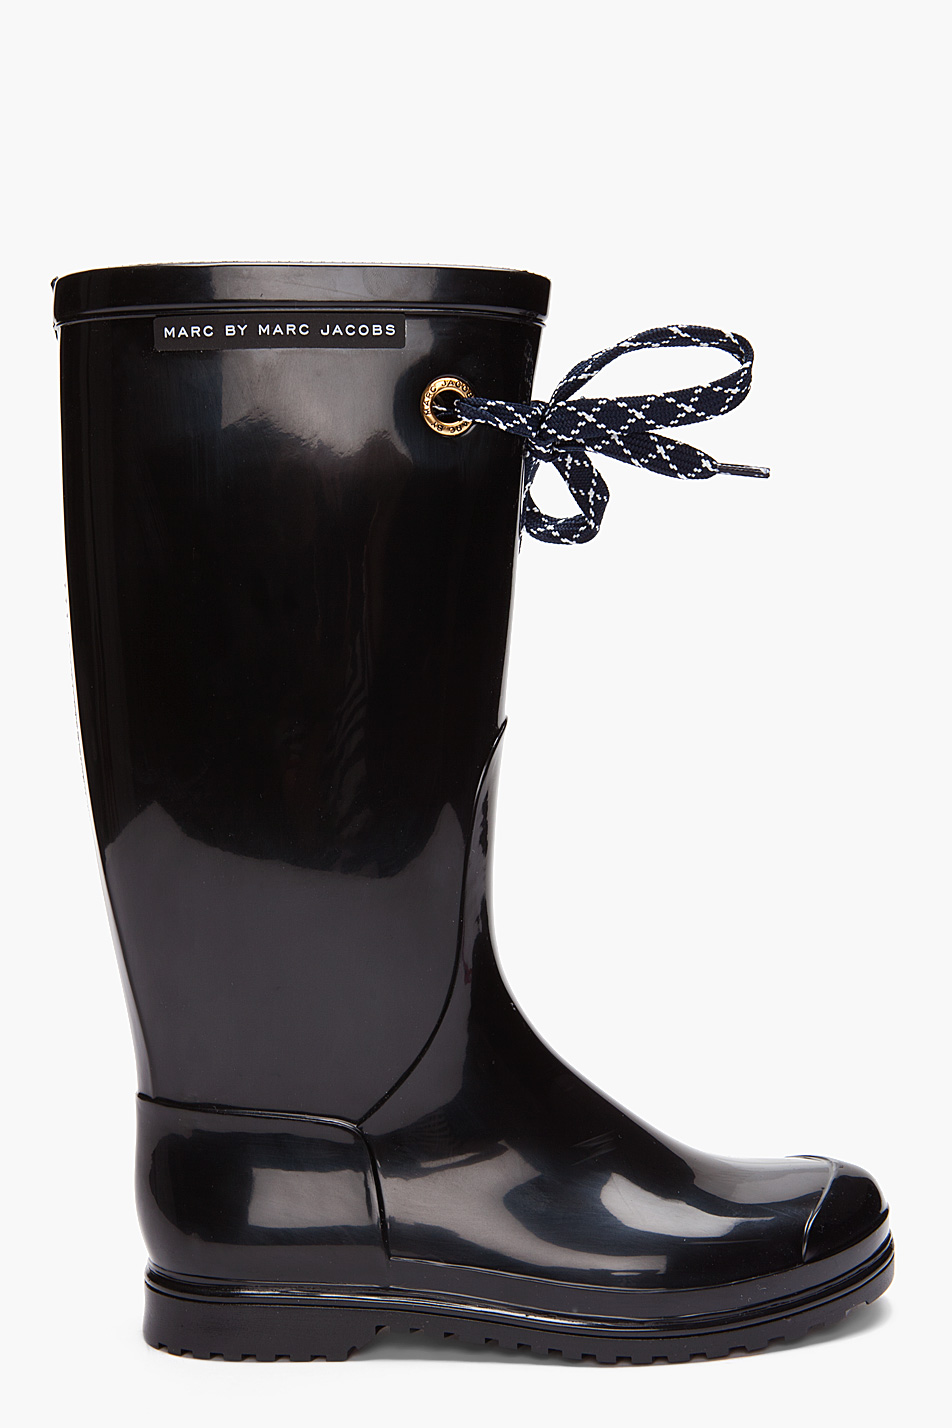 marc by marc jacobs black rain boots in black lyst. Black Bedroom Furniture Sets. Home Design Ideas